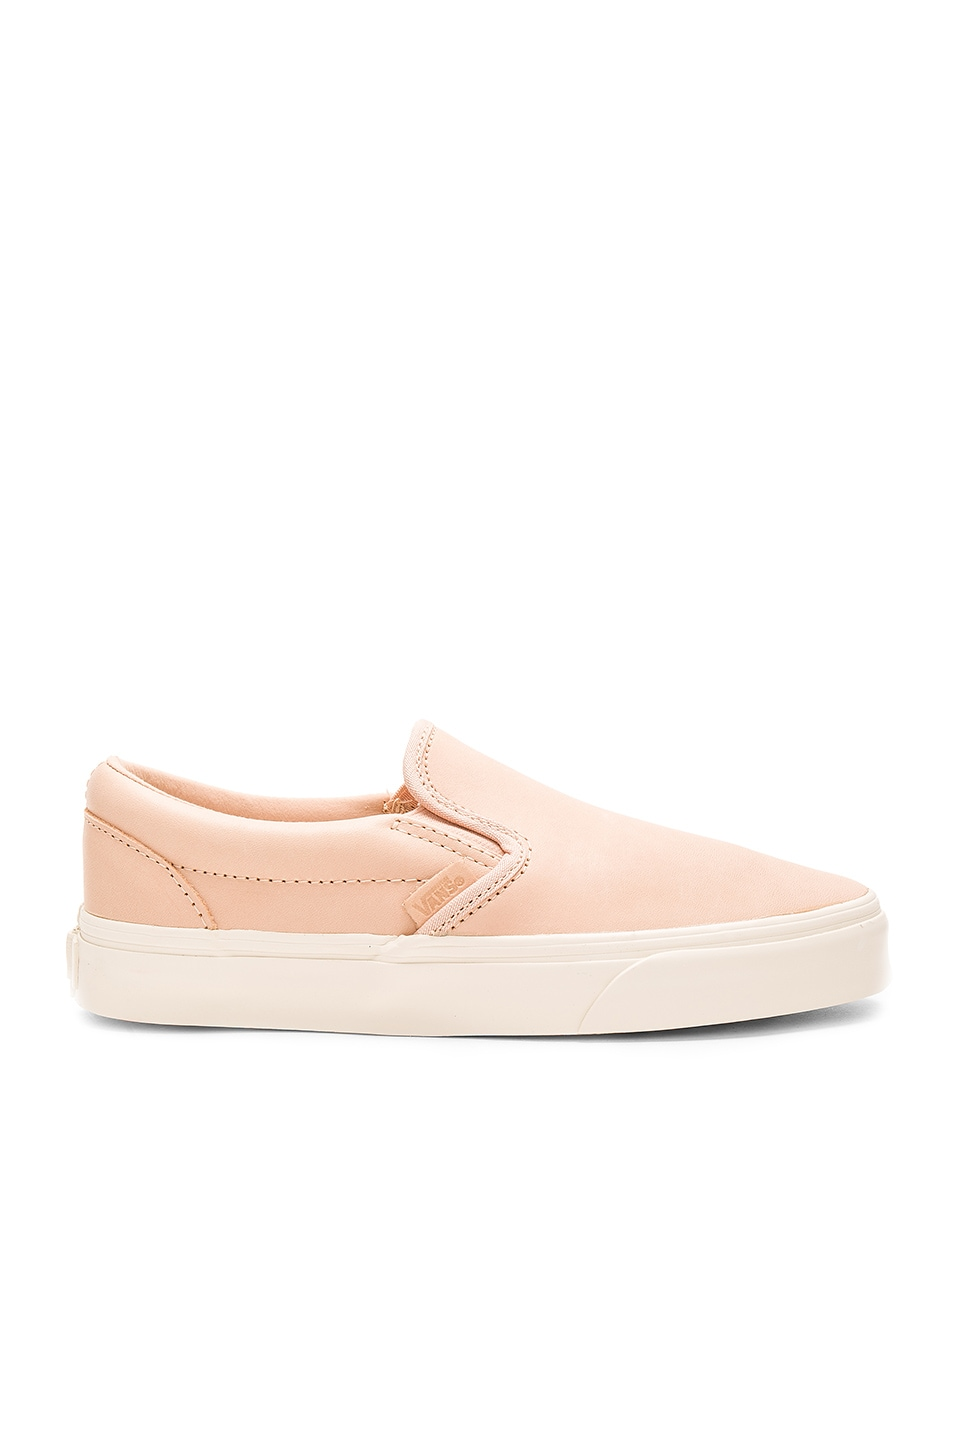 Vans Classic Slip On DX Sneaker in Tan